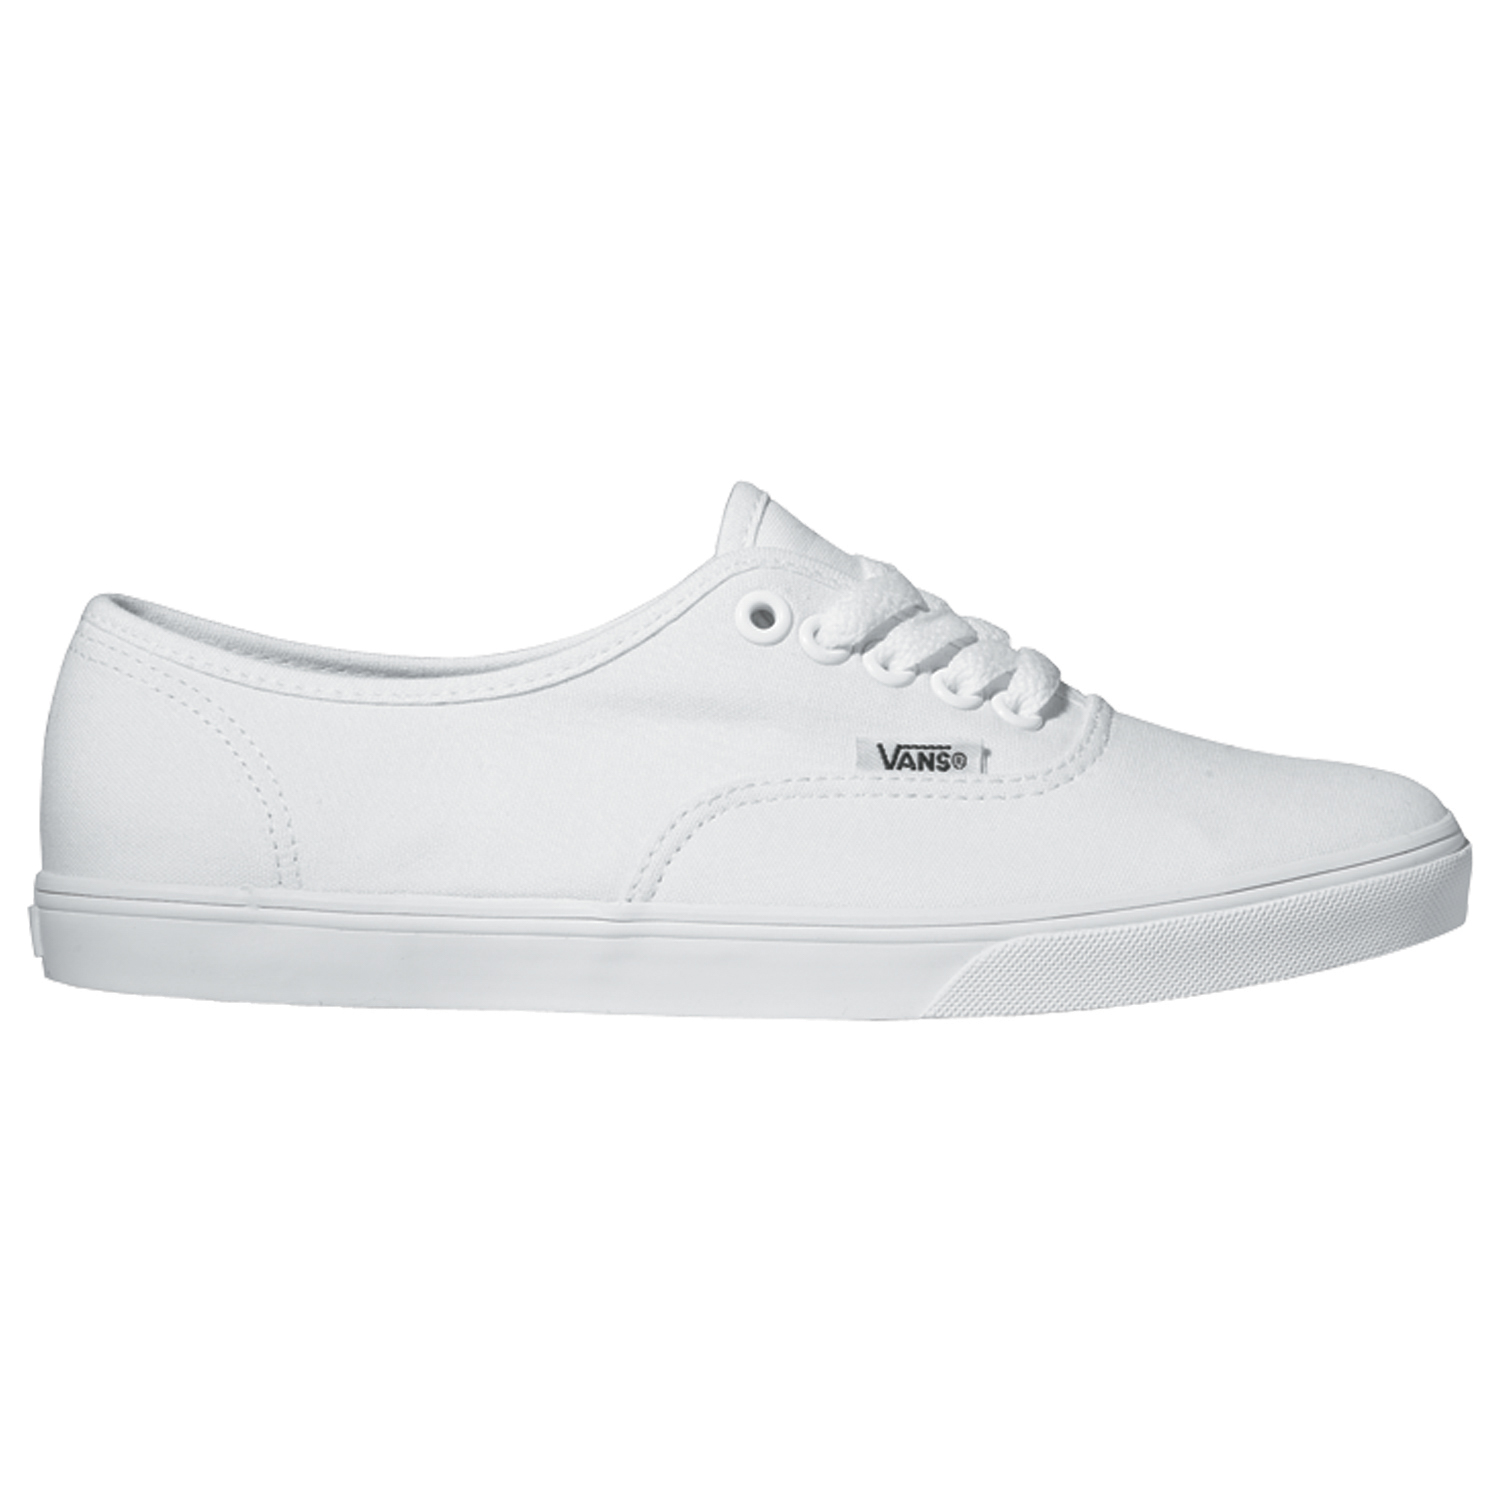 vans-authentic-lo-pro-true-white-99-90